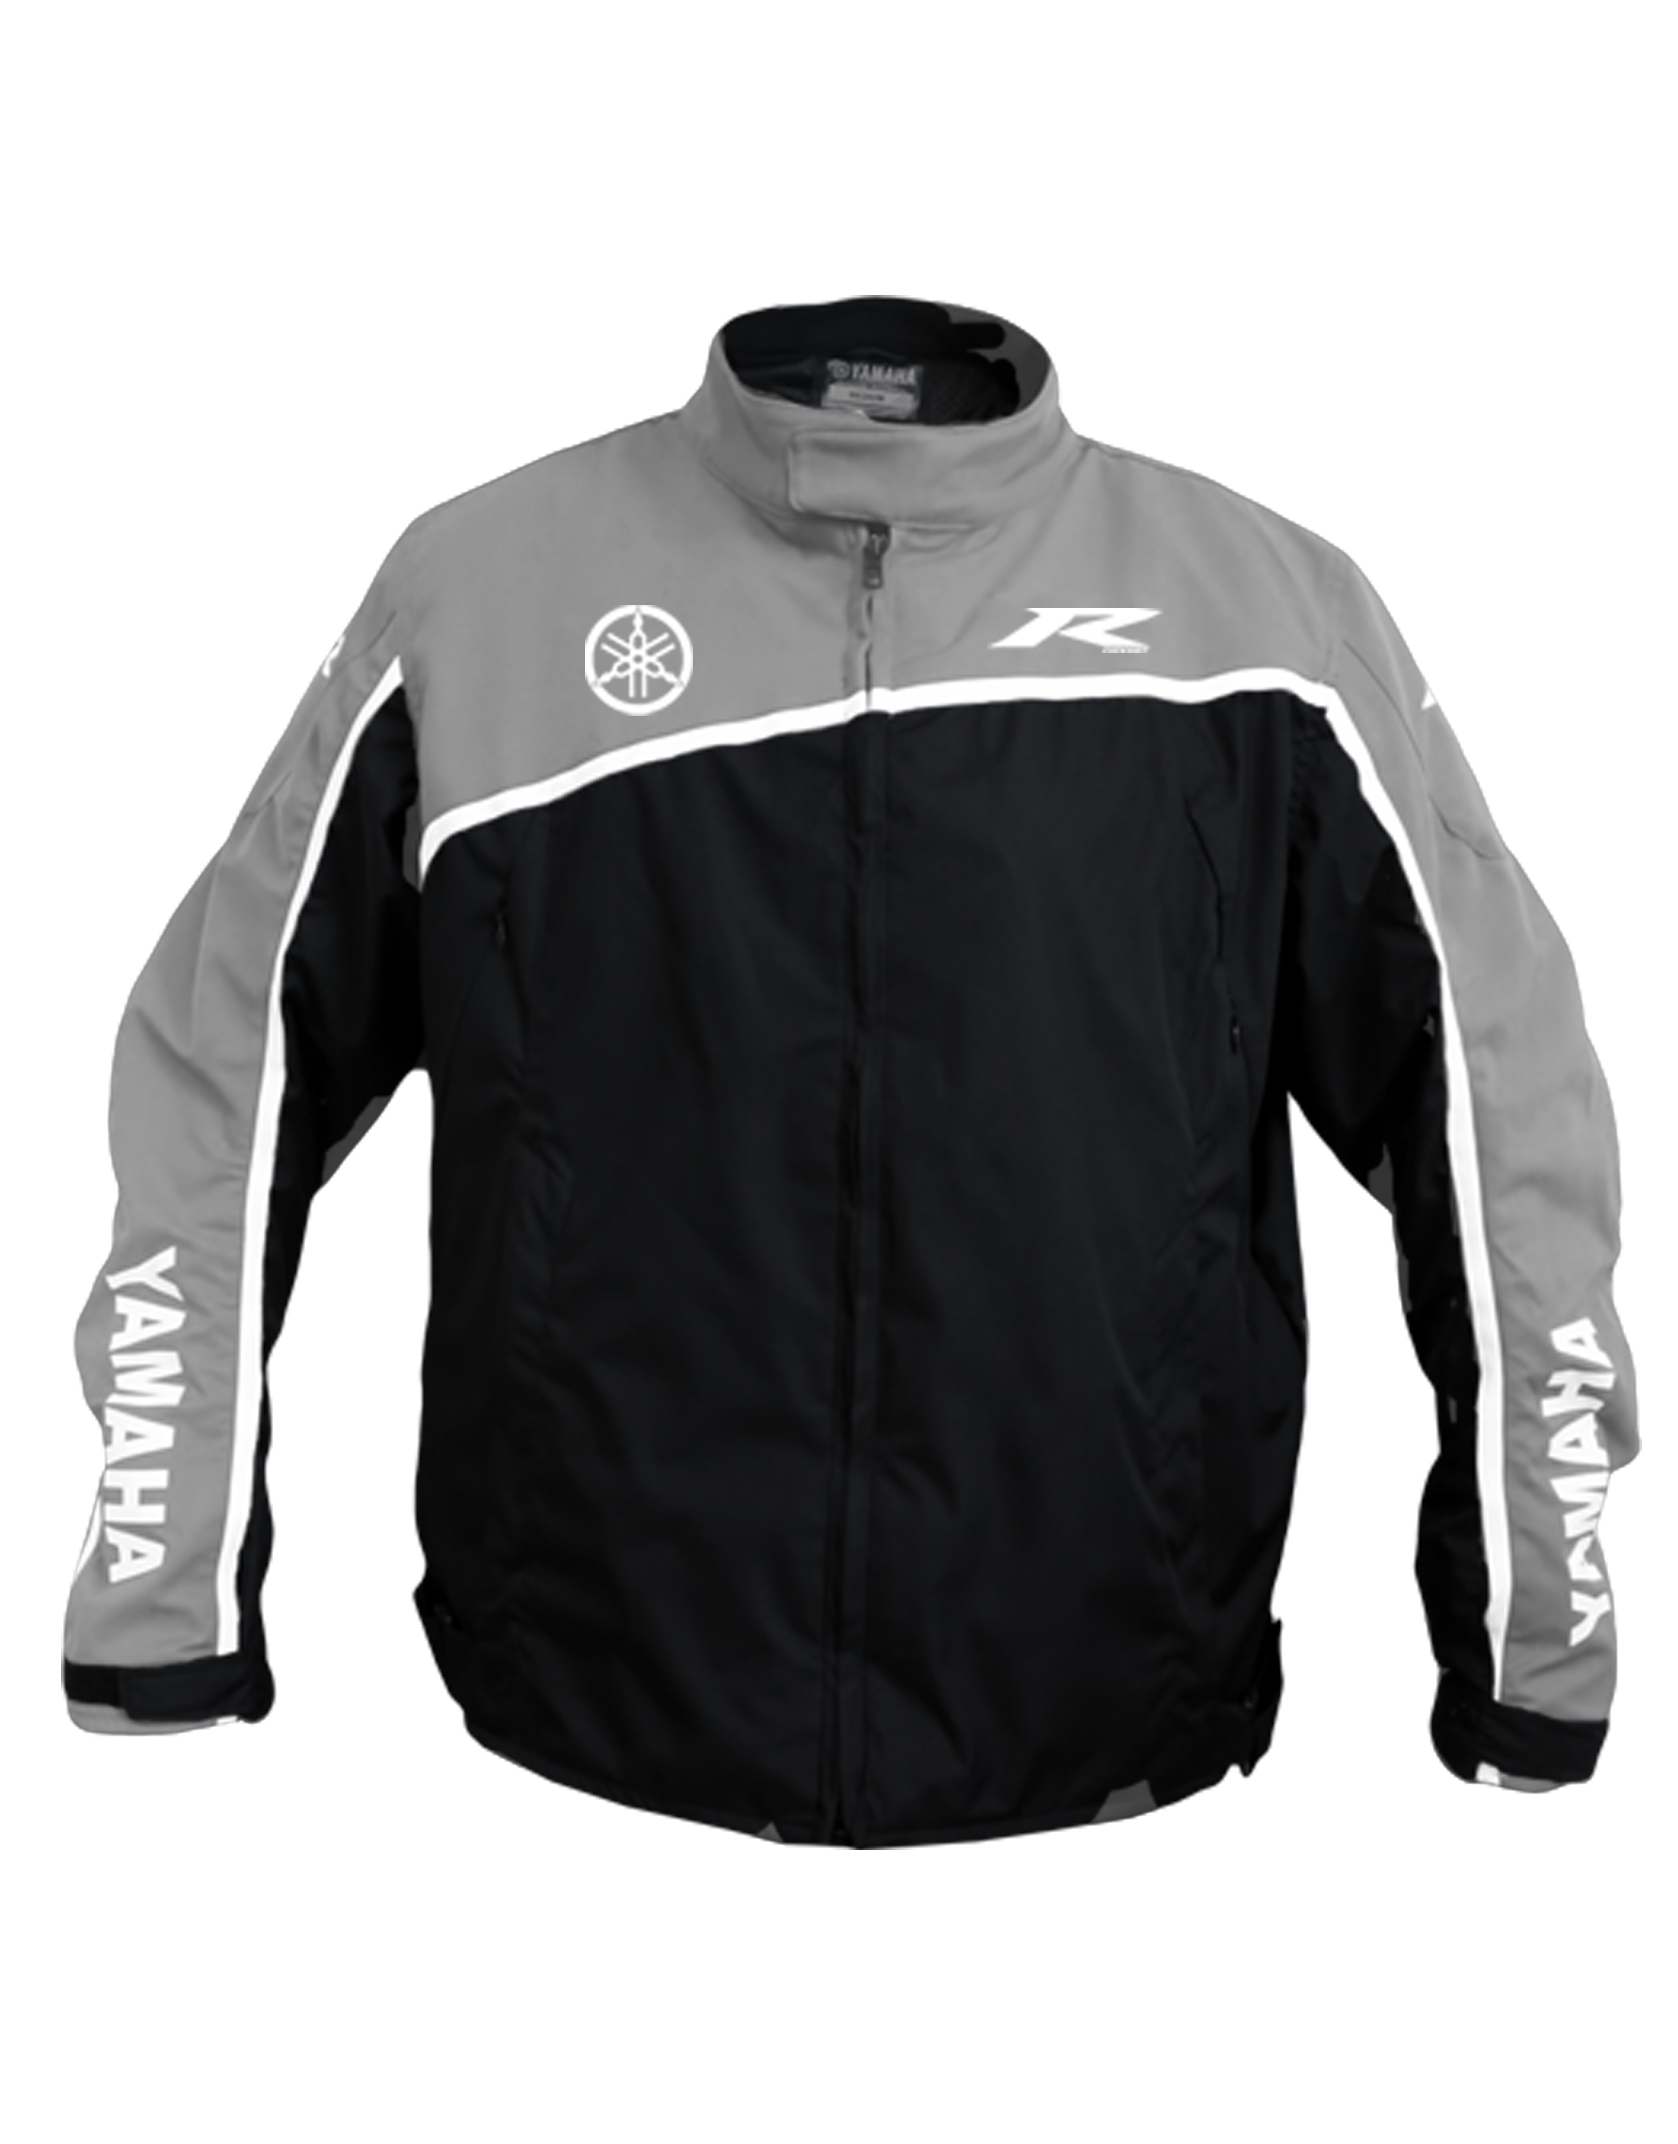 Yamaha Jacket Rconcept 01 Grey